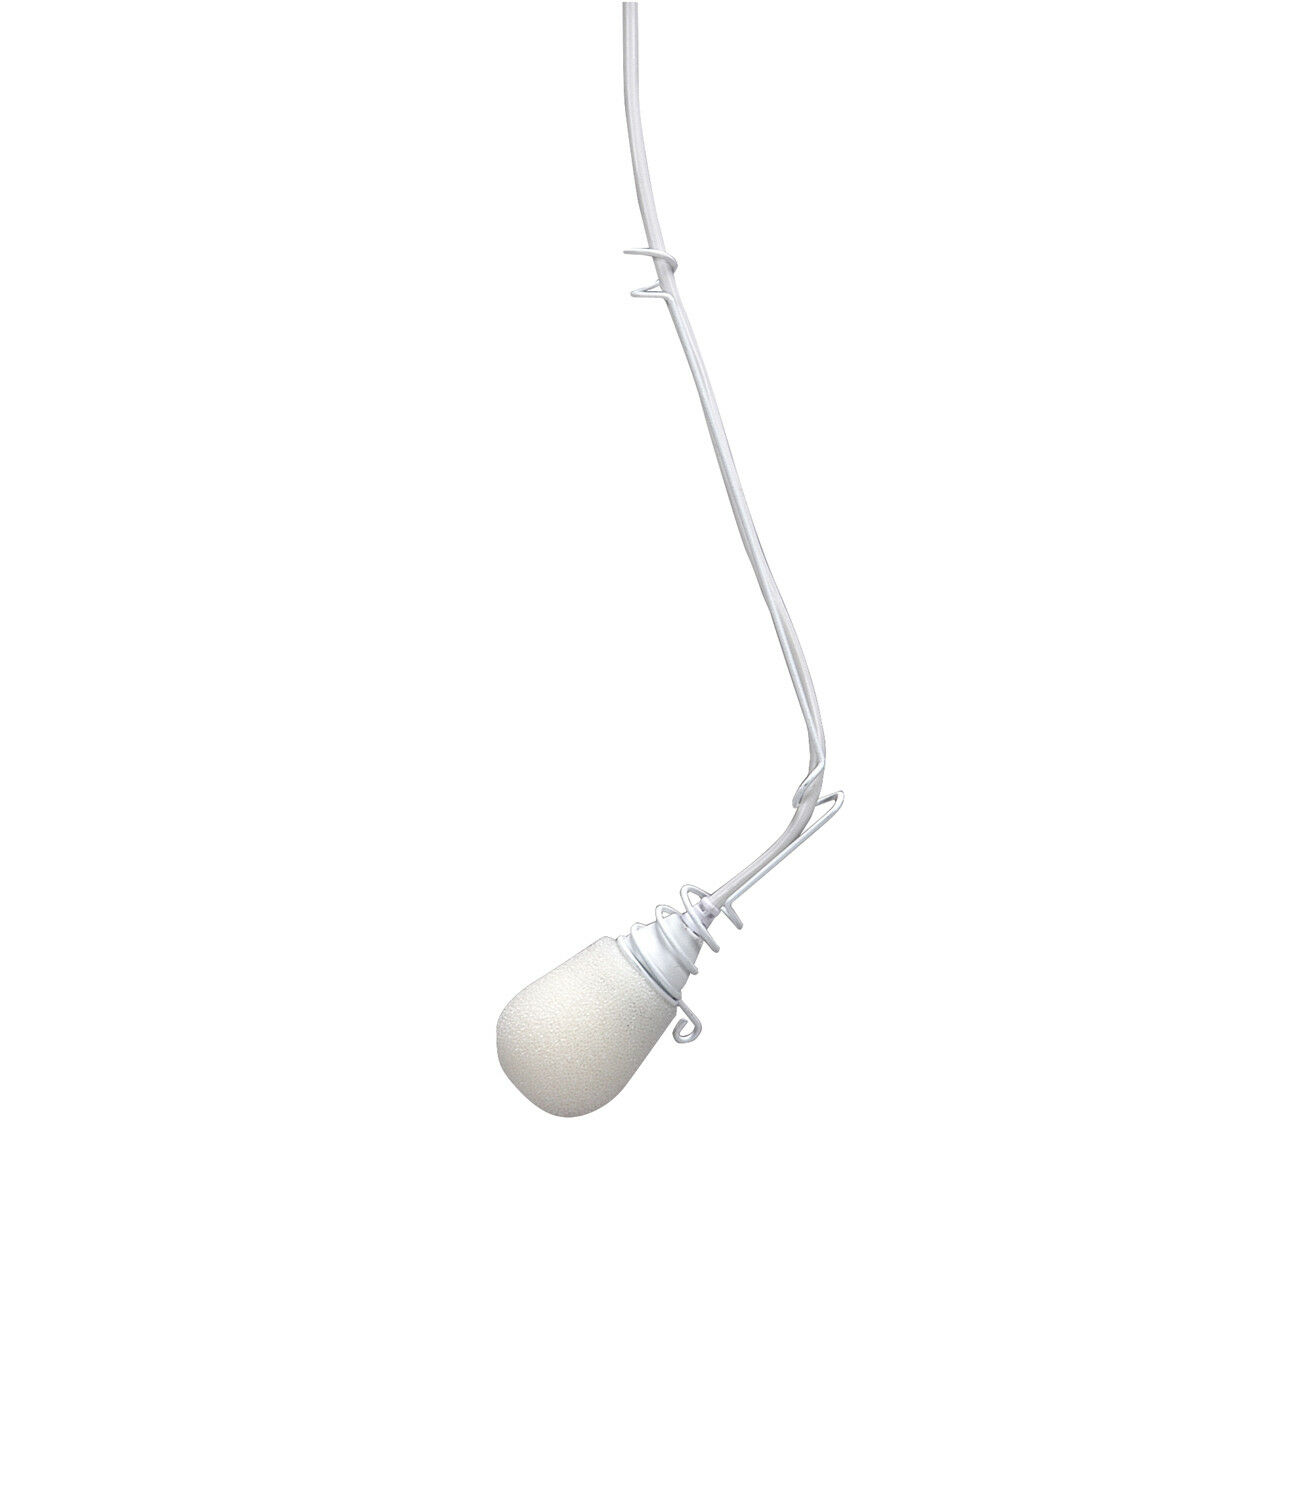 Peavey Vcm 3 Choir Miniature Microphone W  Windscreen & Cable - White 577960 New